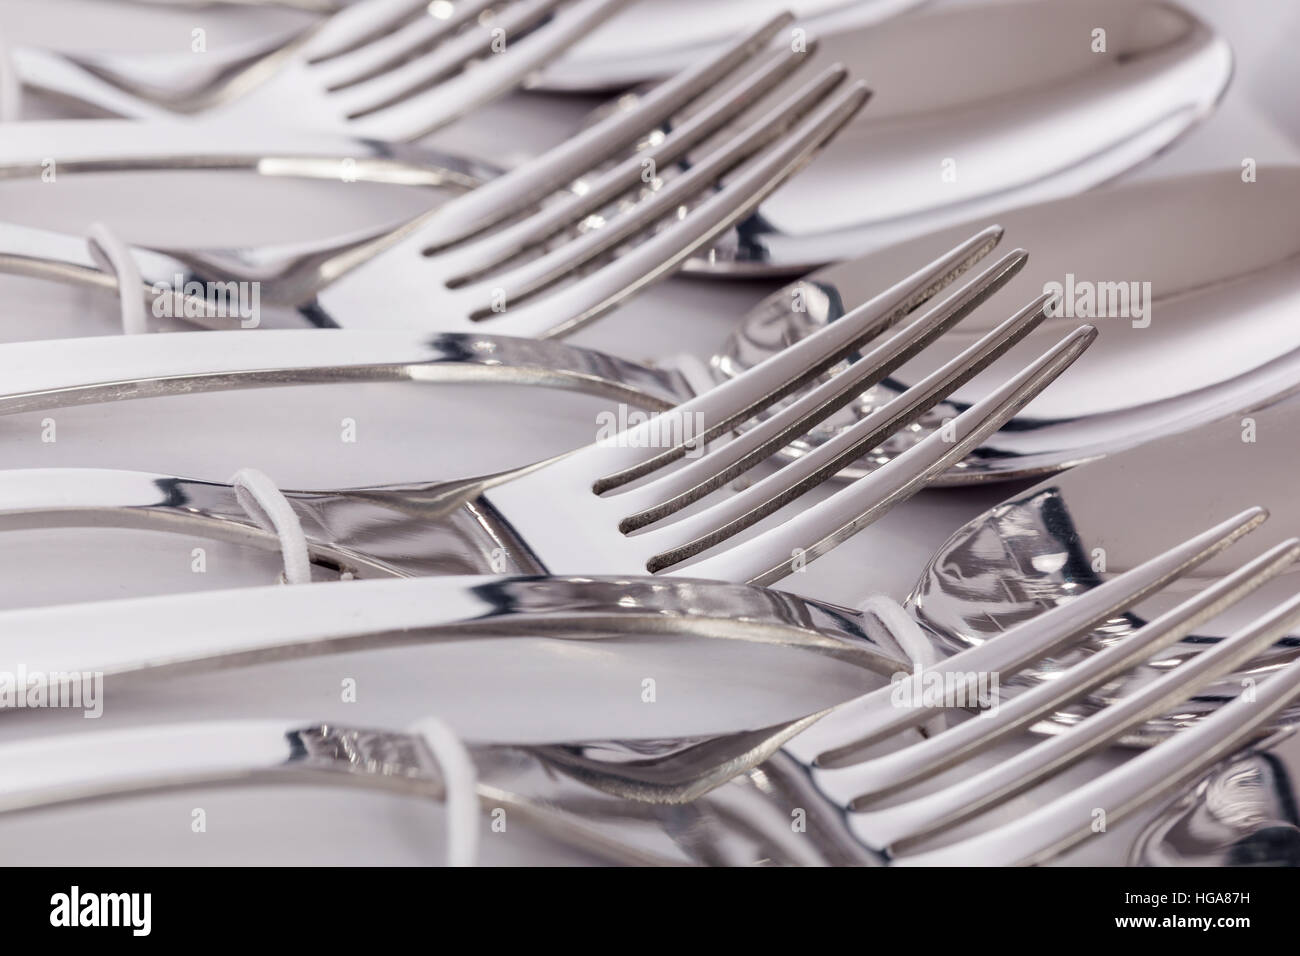 Close up macro detail of a flatware box set with forks and spoons. - Stock Image